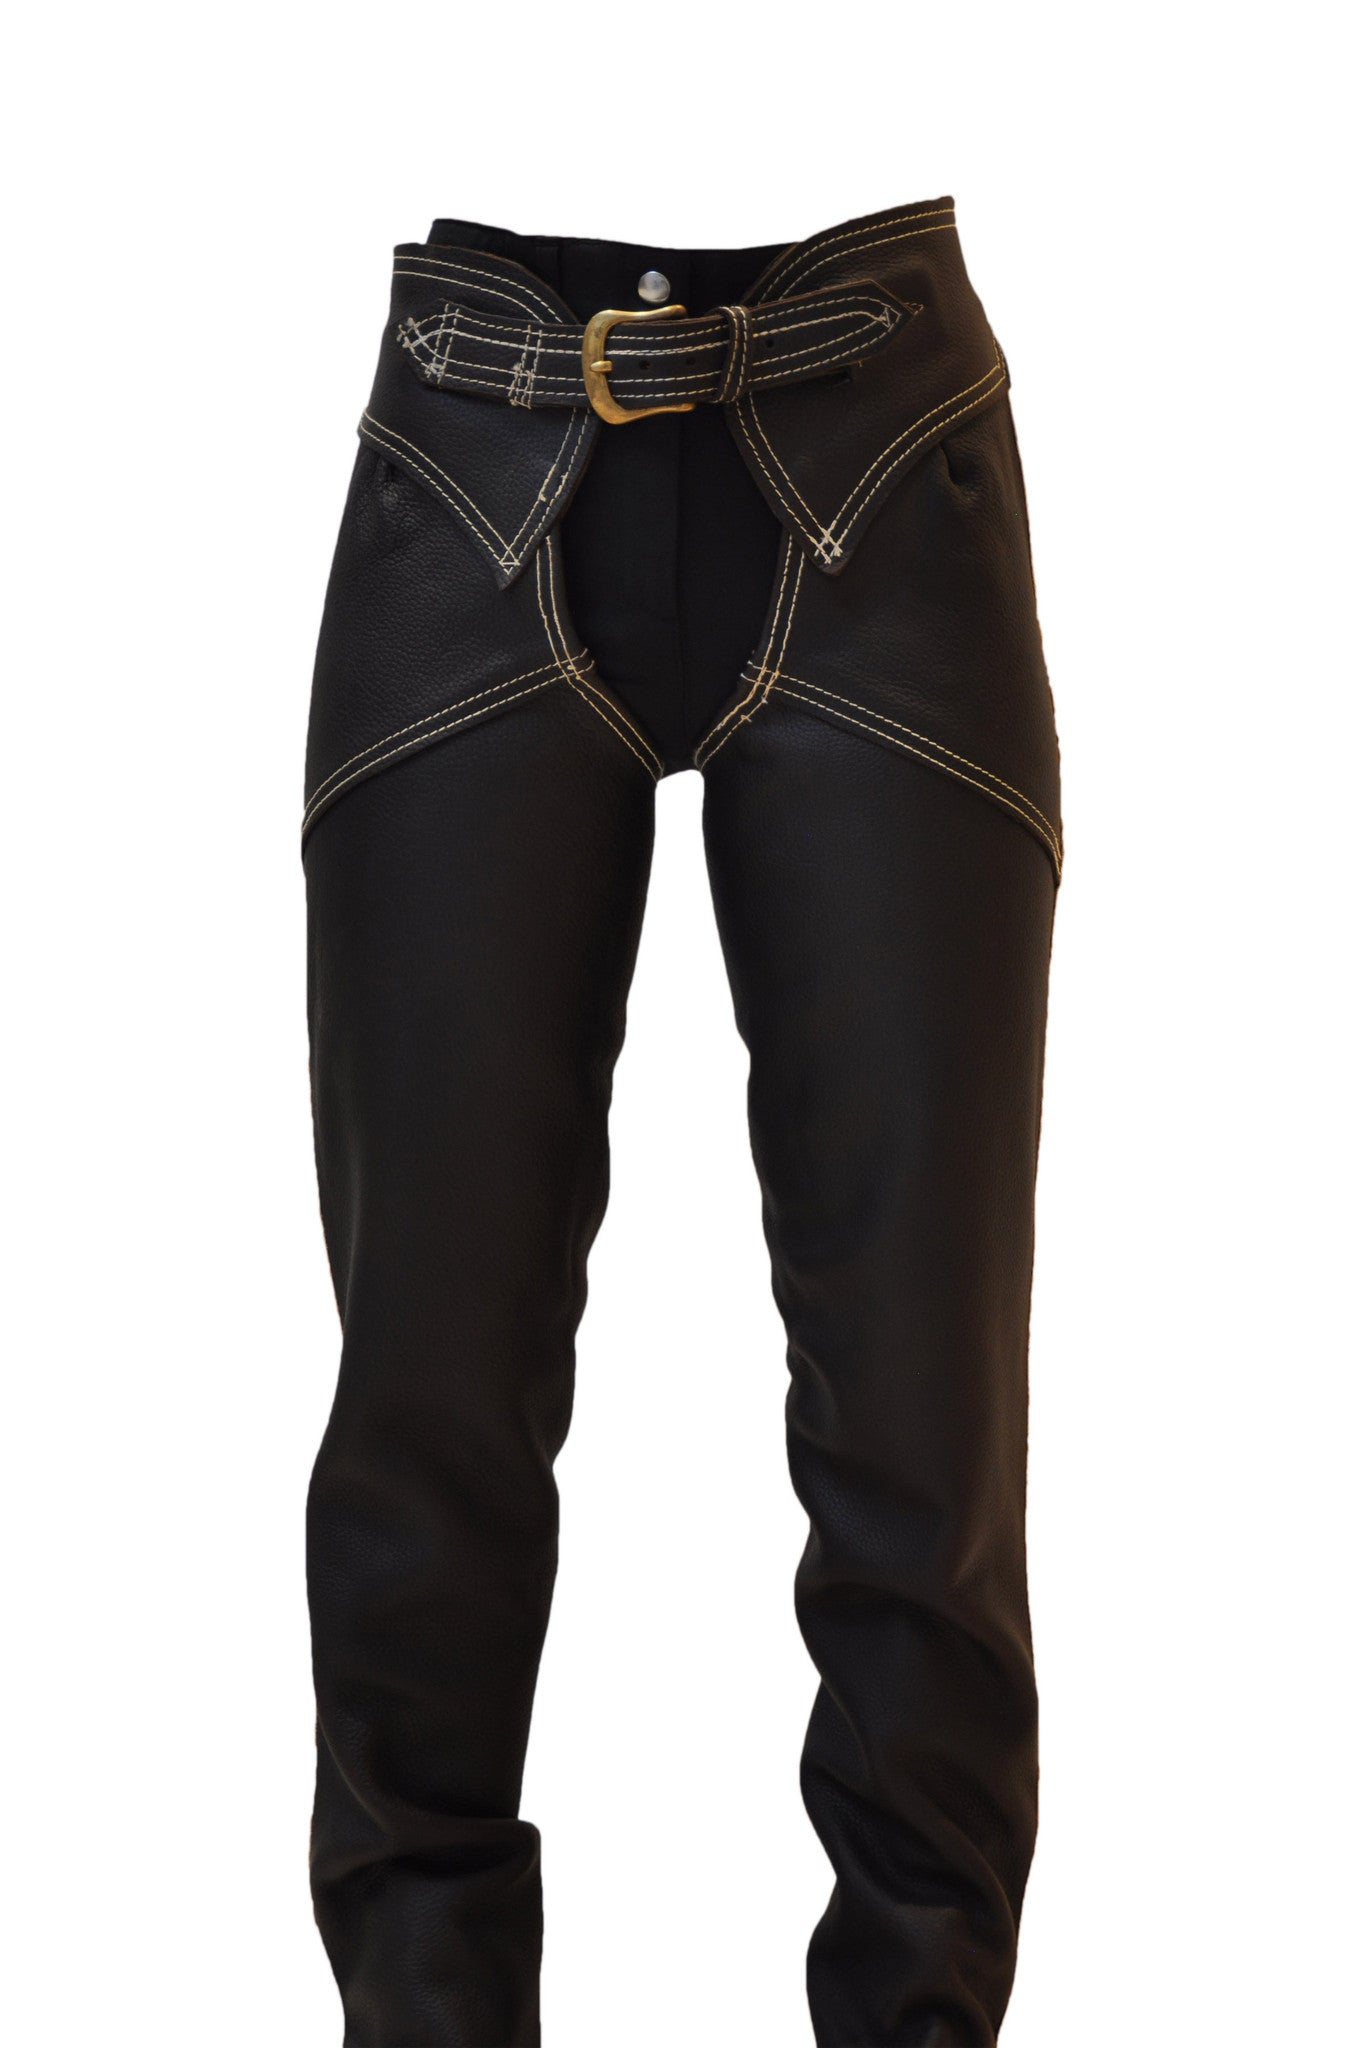 Chaps - Original Full Length Leather Chaps - Regular